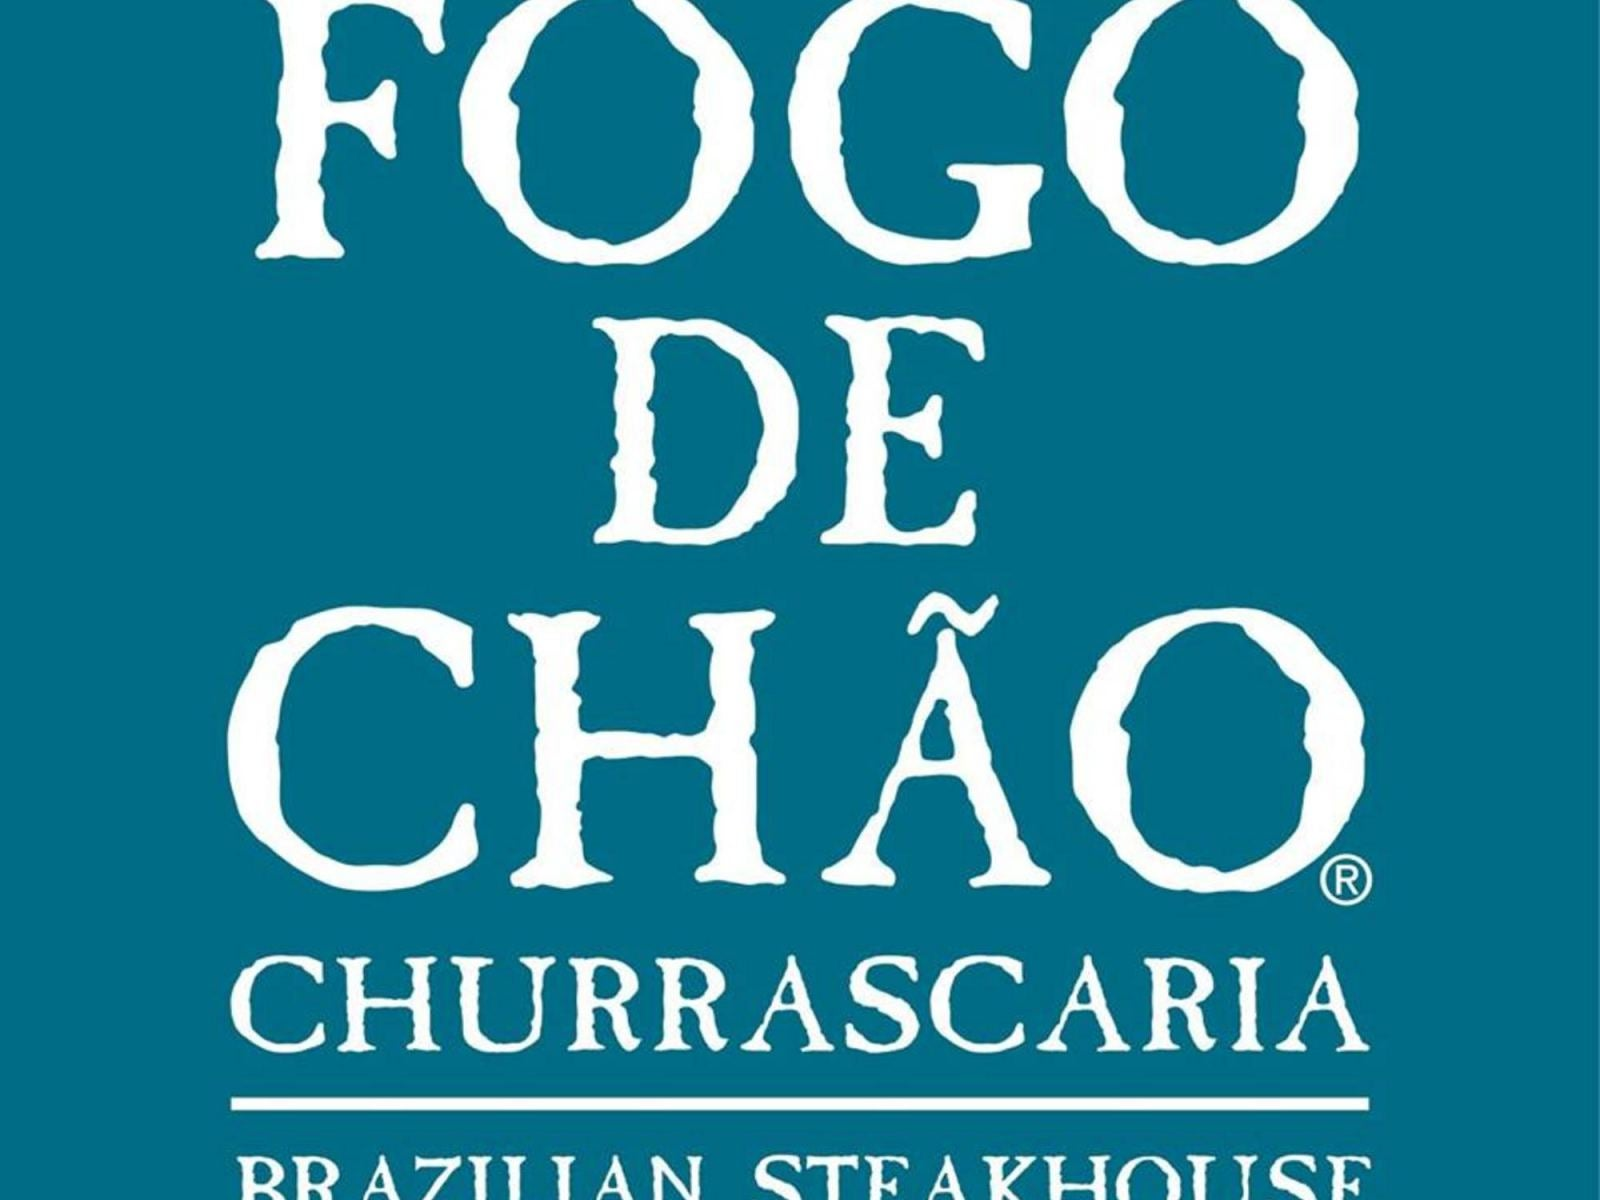 Fogo de Chão Brazilian Steakhouse - Los Angeles